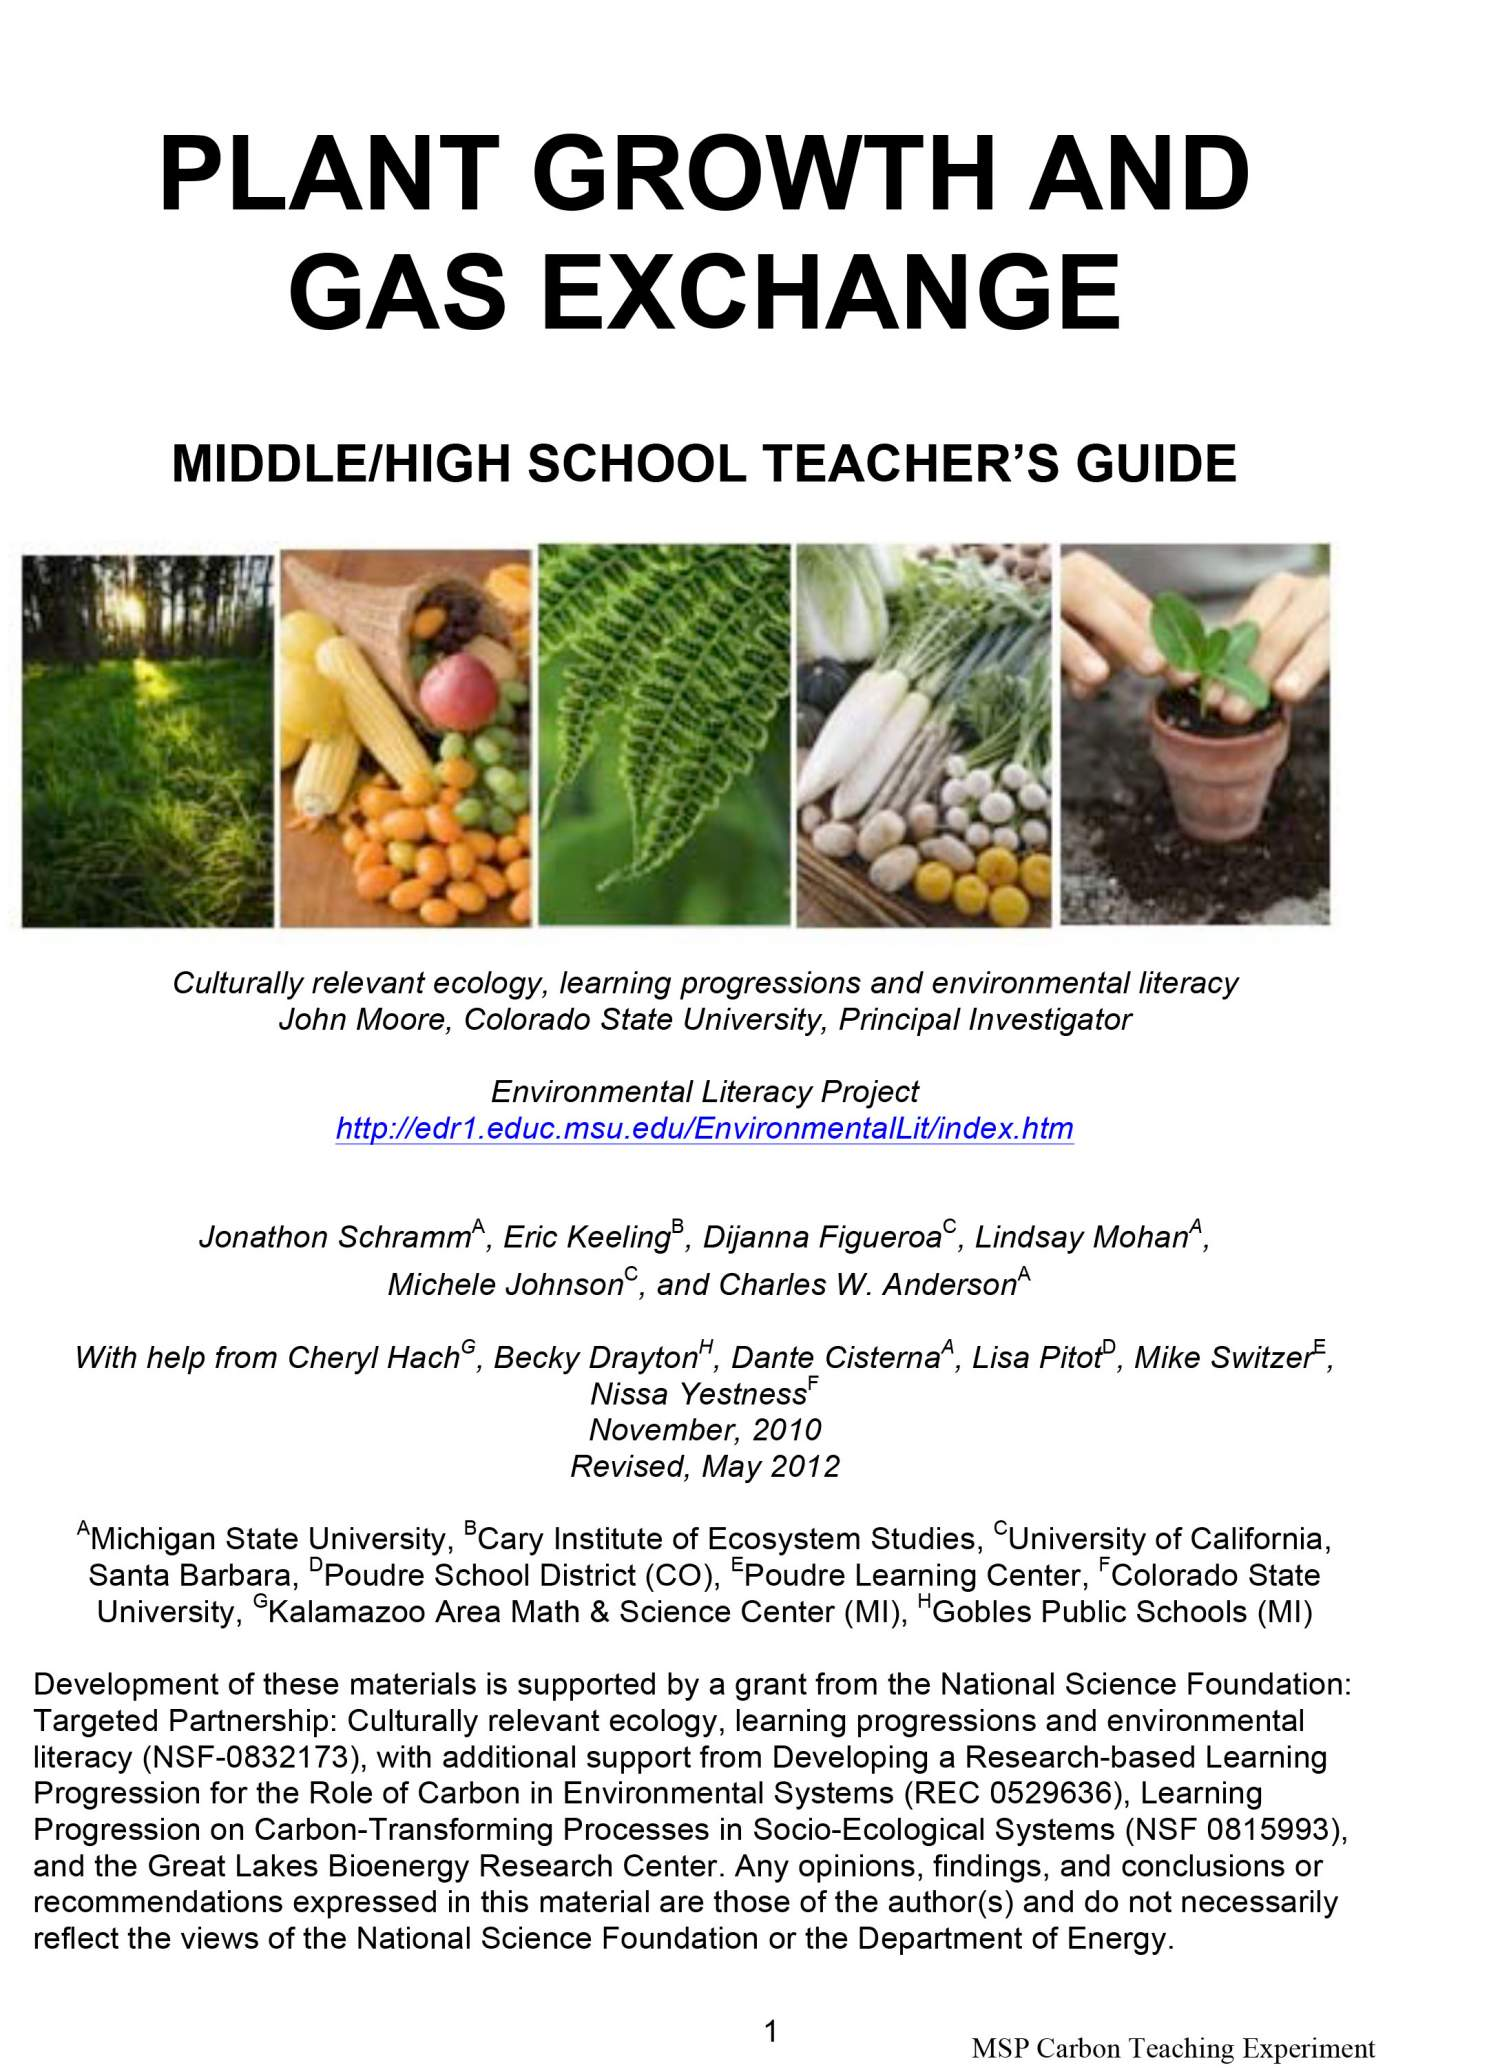 Plant Growth and Gas Exchange